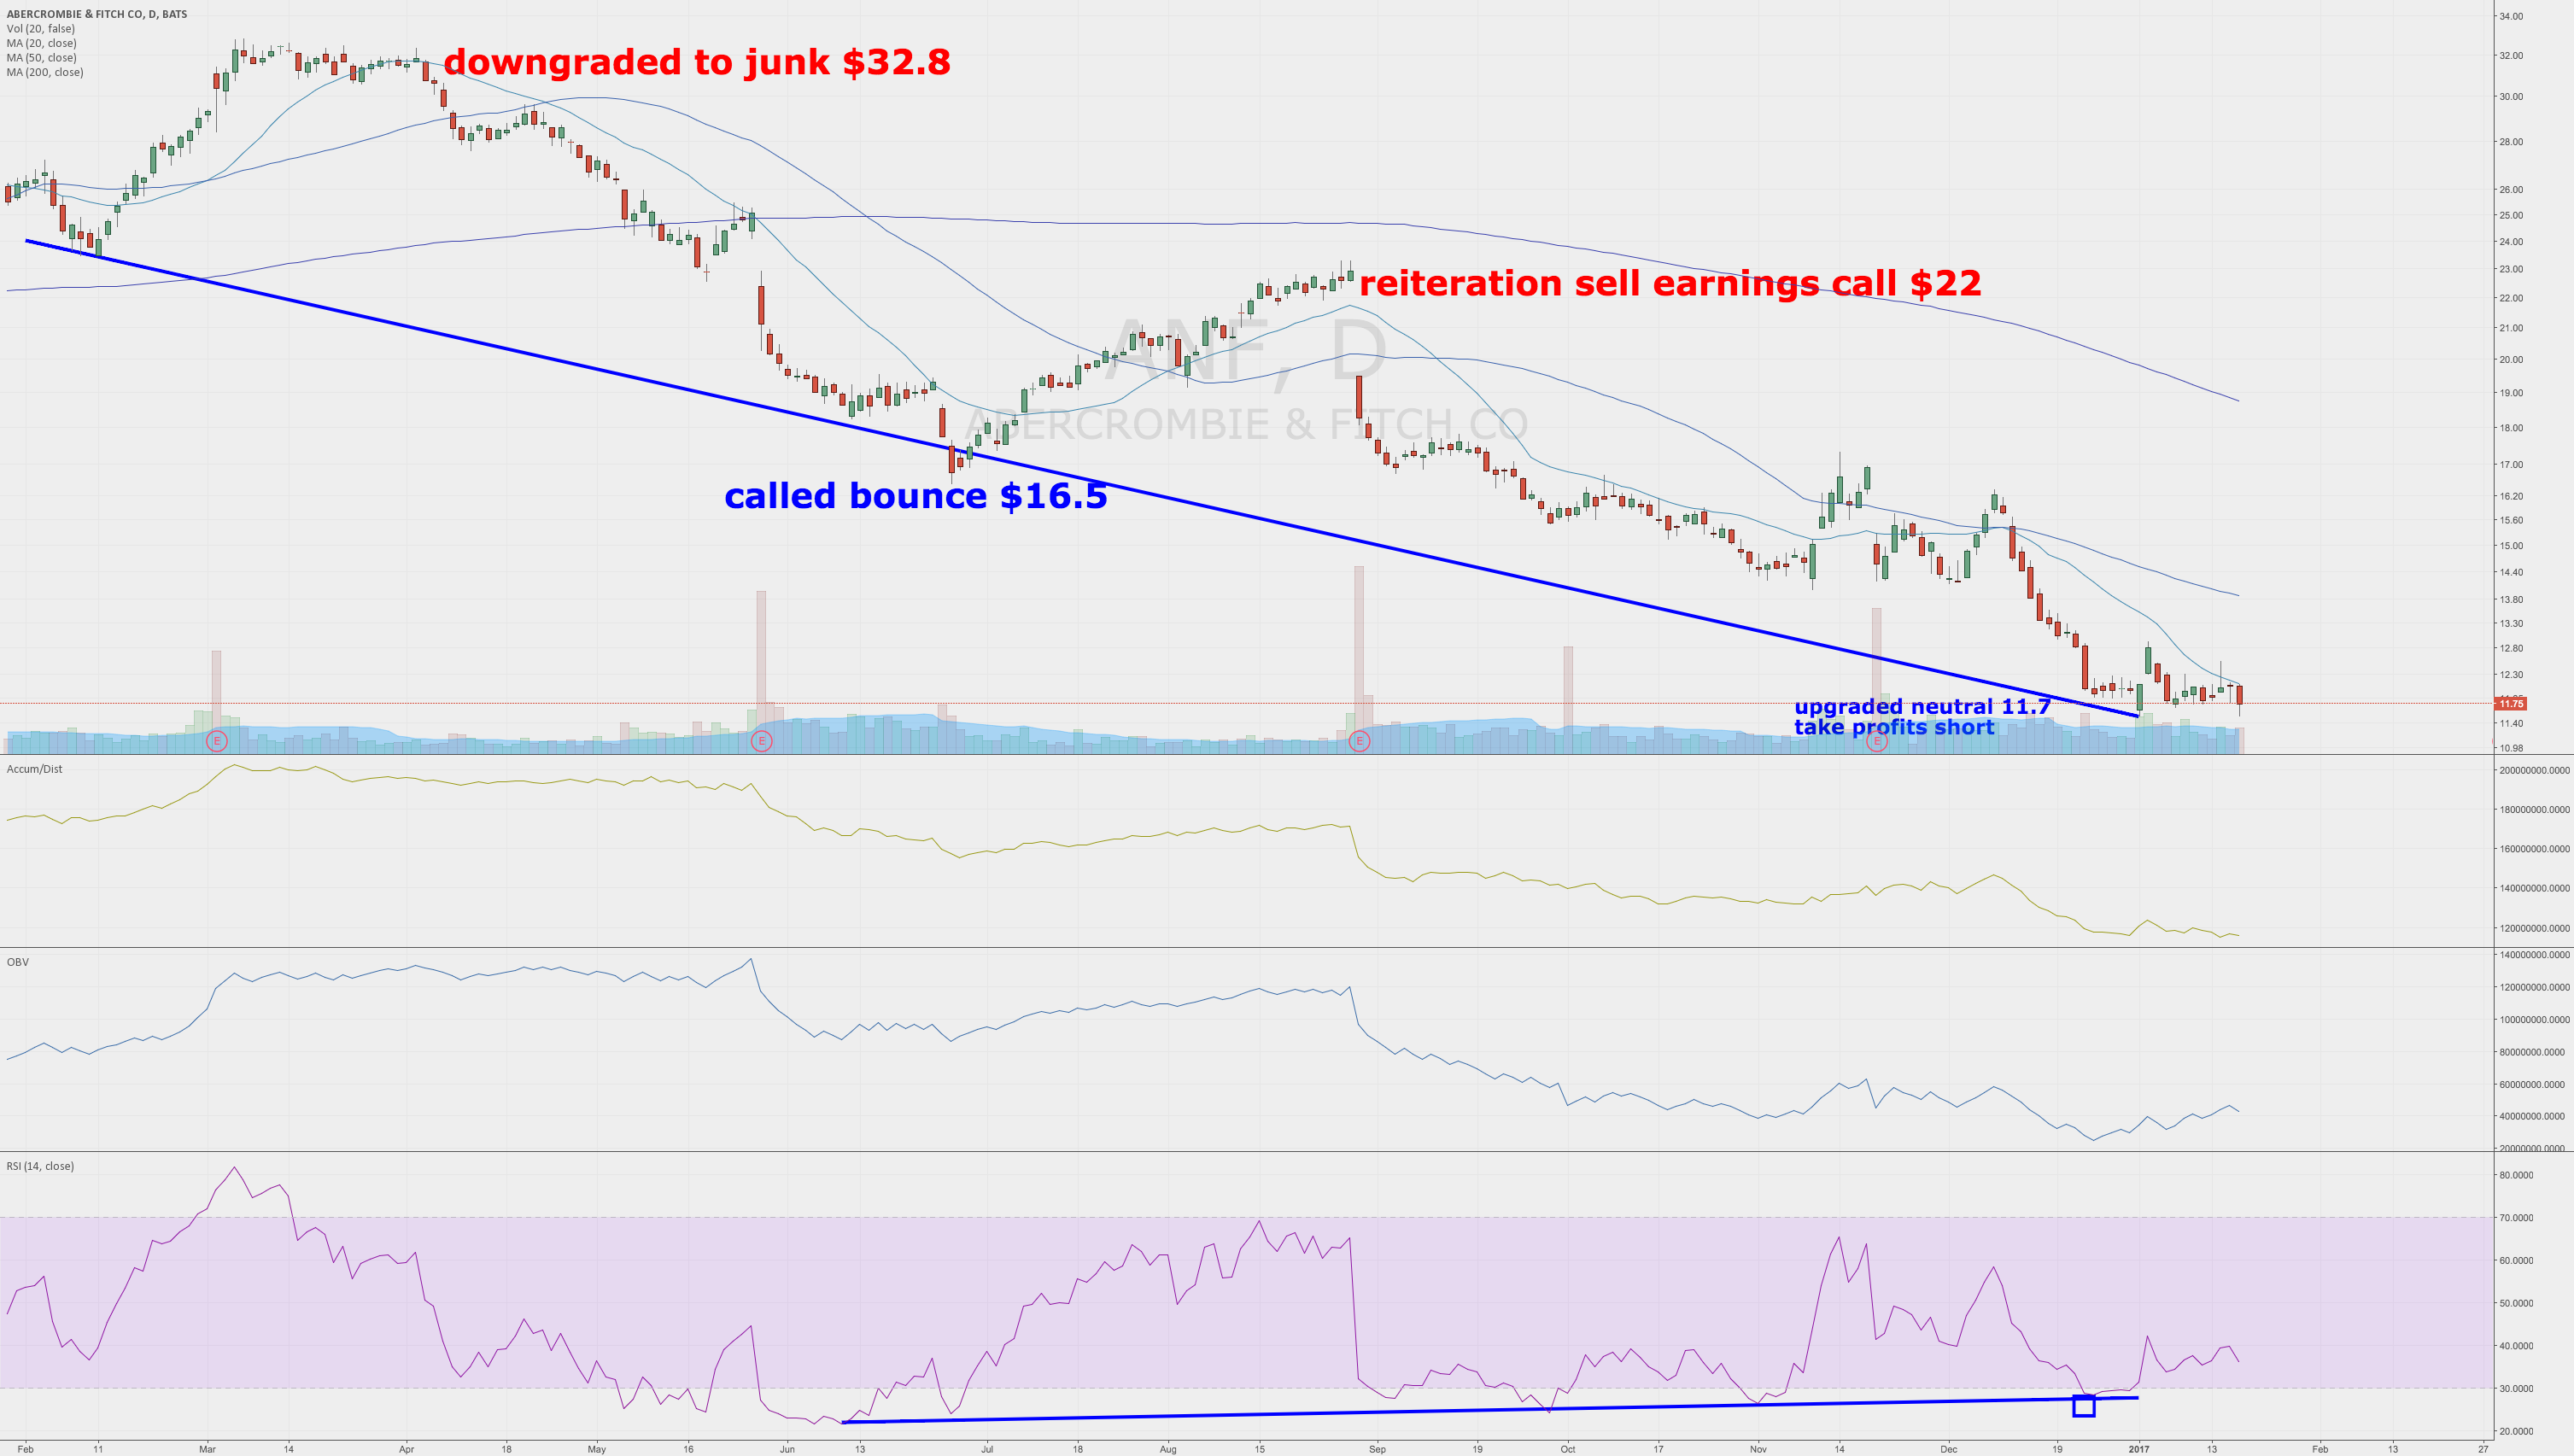 Abercrombie & Fitch Upgraded to Neutral $11.7 from Strong Sell